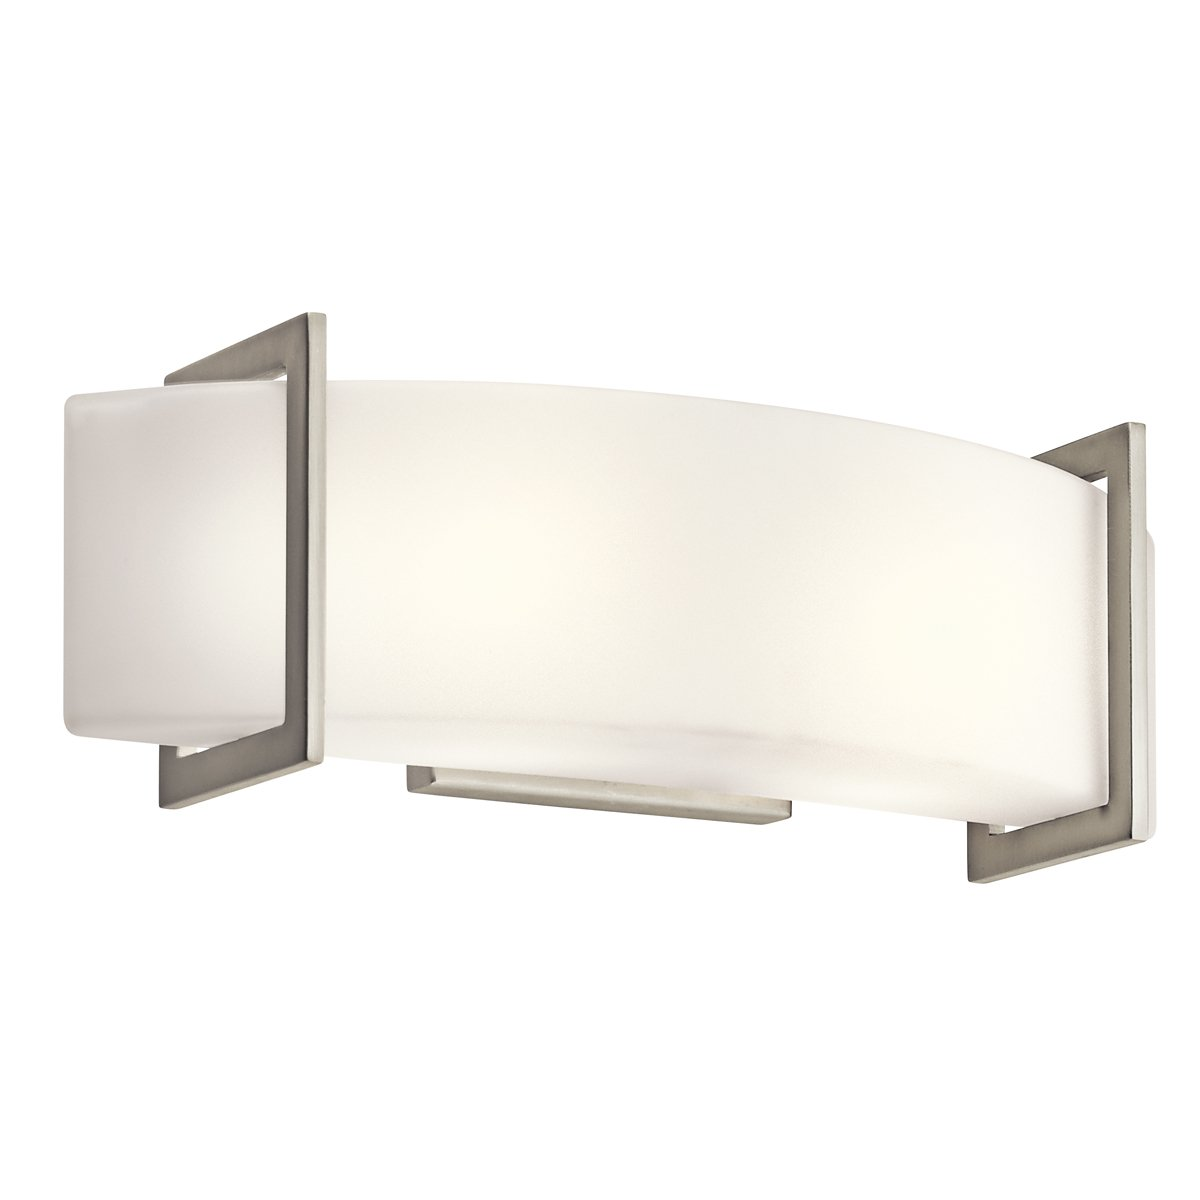 Kichler 45218NI Two Light Linear Wall Sconce by Kichler Lighting (Image #1)